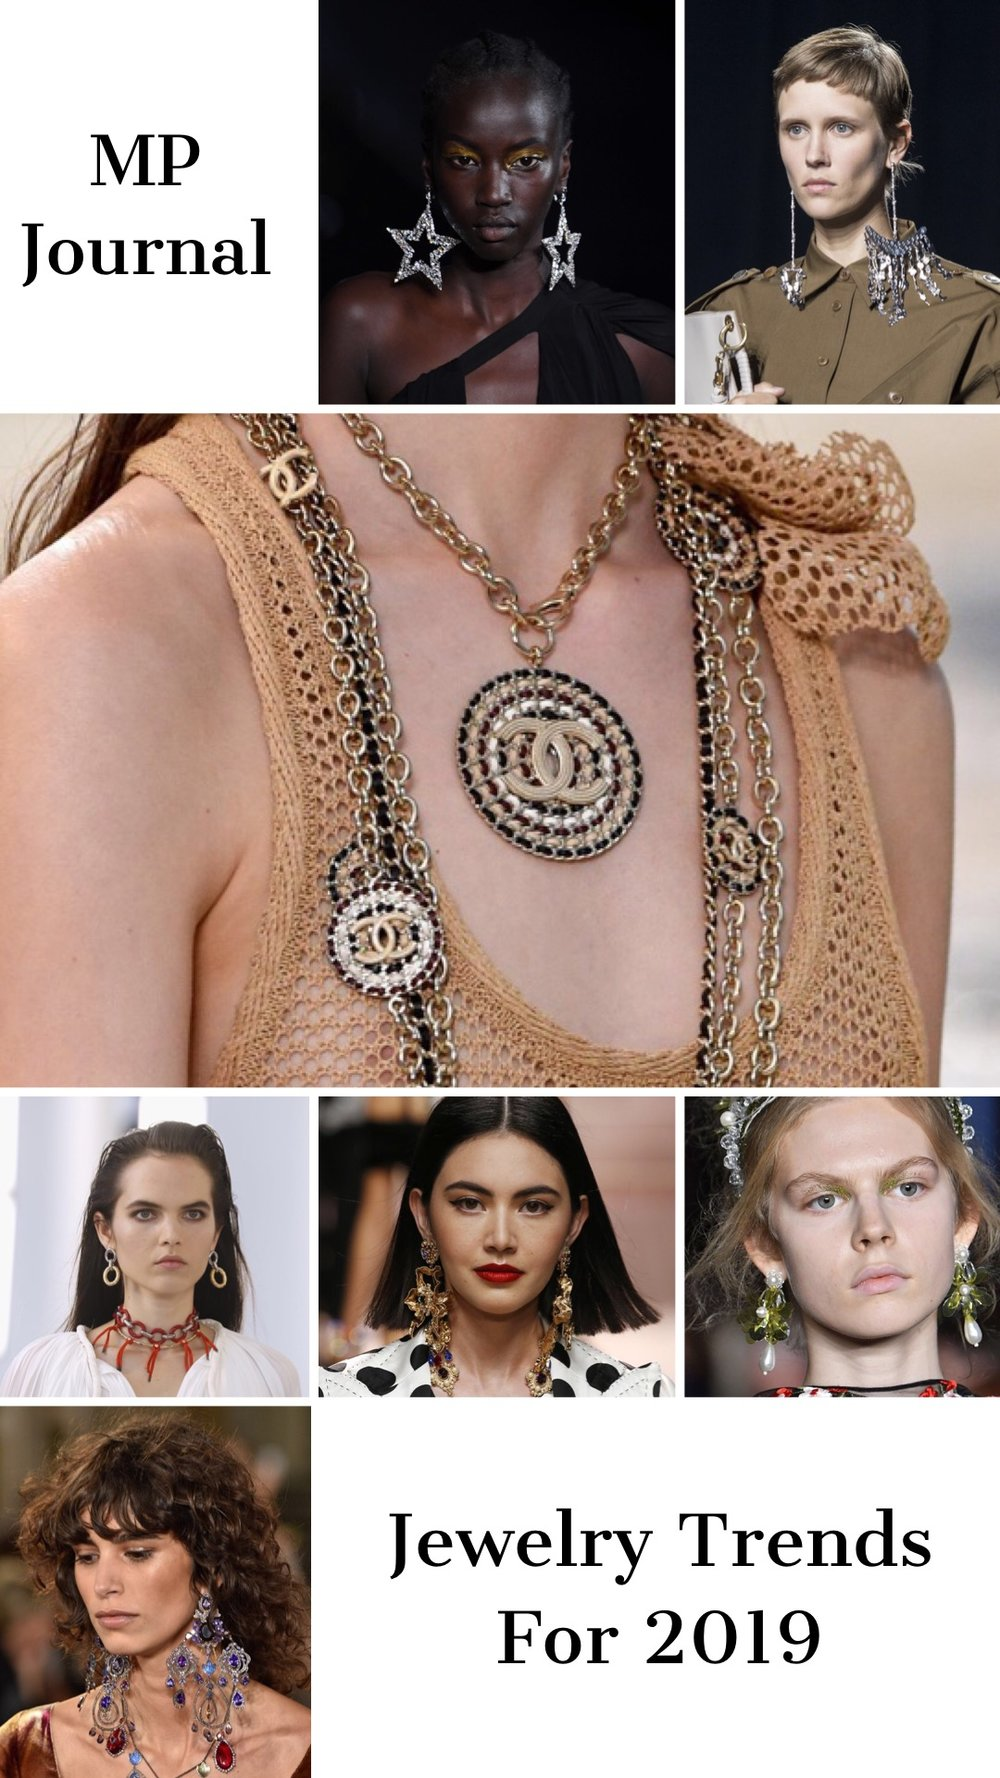 Jewelry Trends for 2019